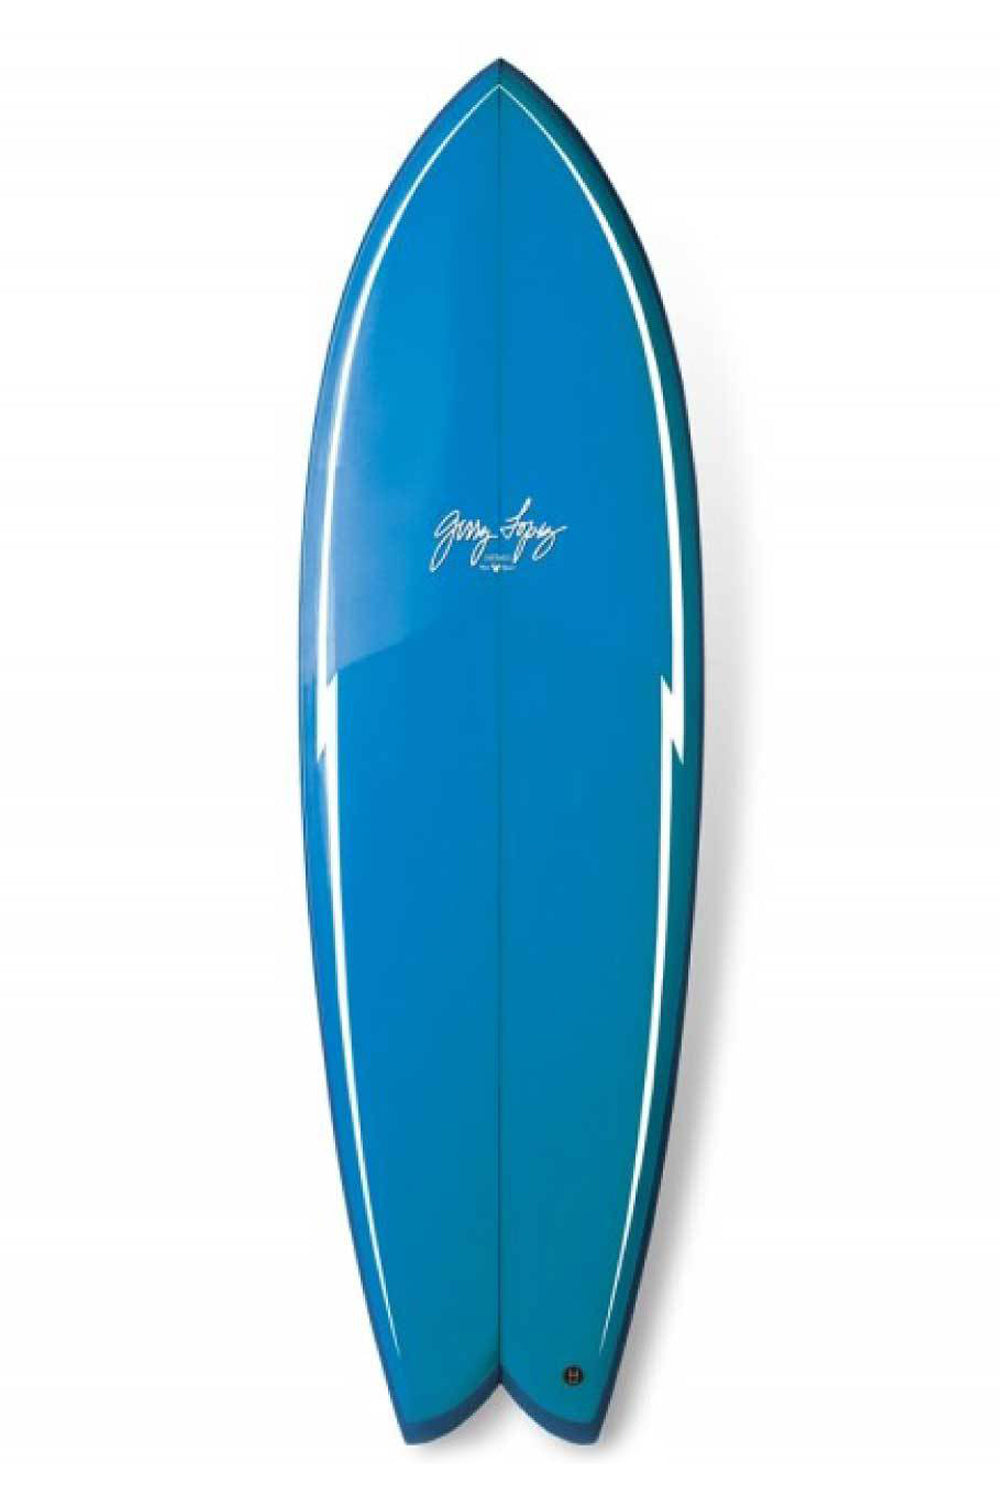 Gerry Lopez Something Fishy Quad Surfboard